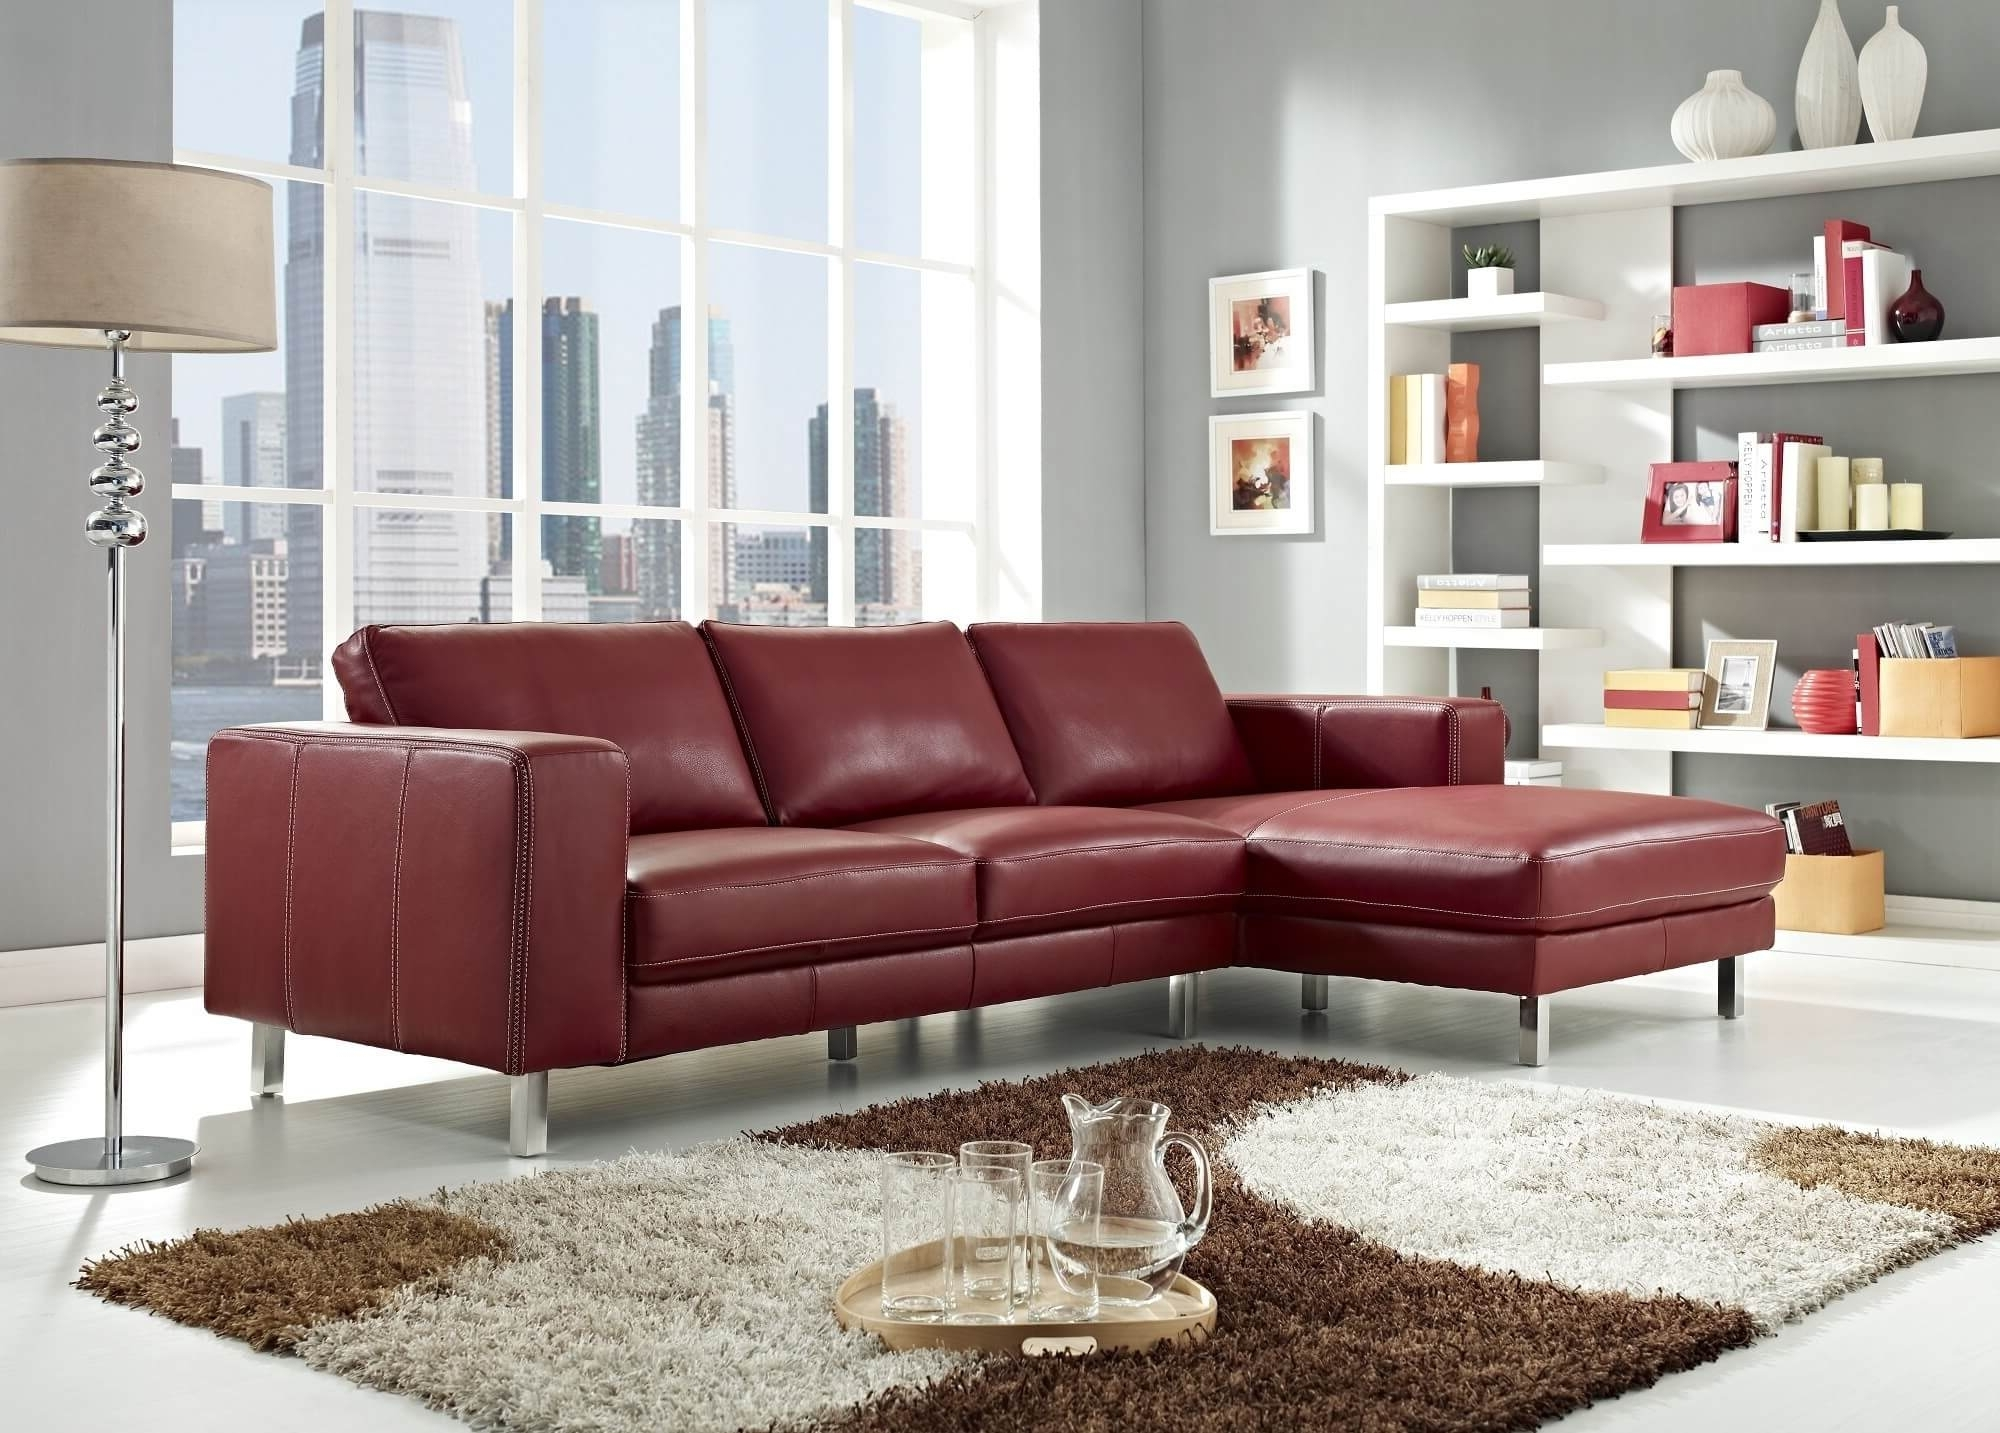 Well Known Stylish Modern Red Sectional Sofas Regarding Red Leather Couches For Living Room (View 15 of 15)